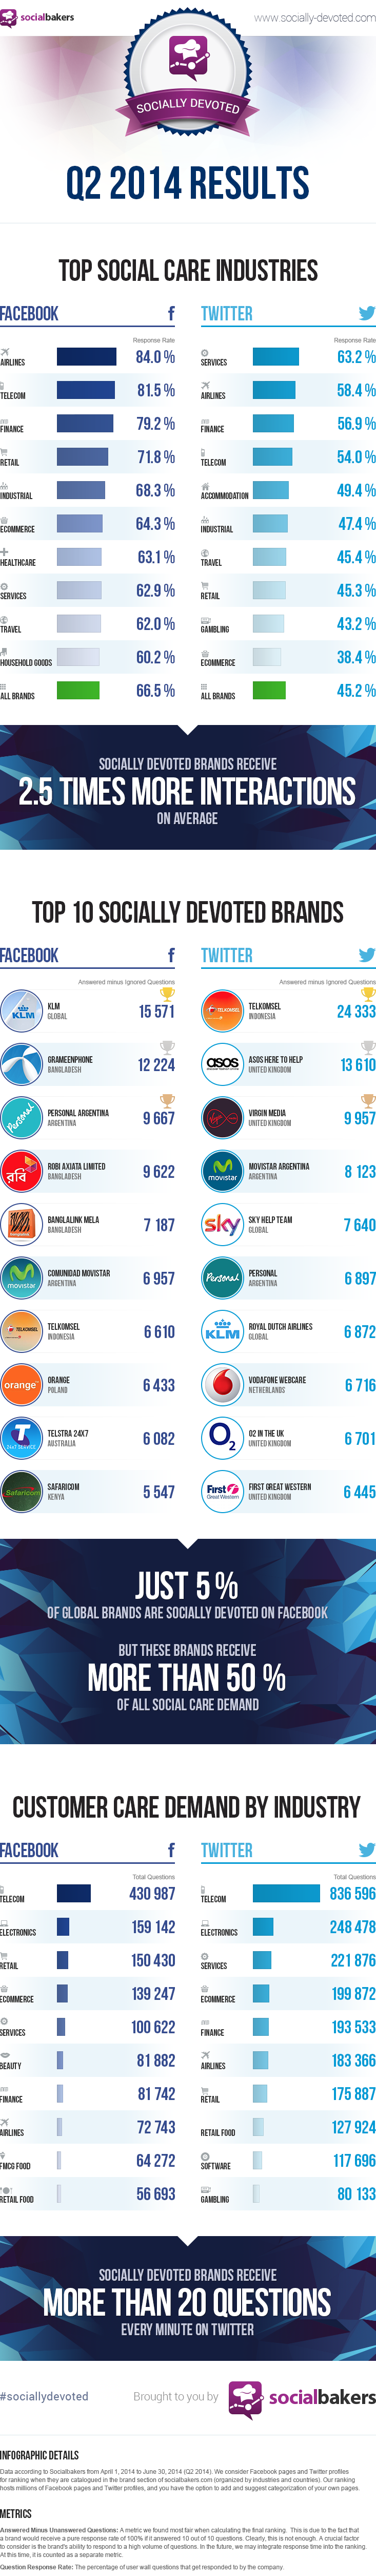 How Socially Devoted are you? Check to see if your brand makes the cut here.